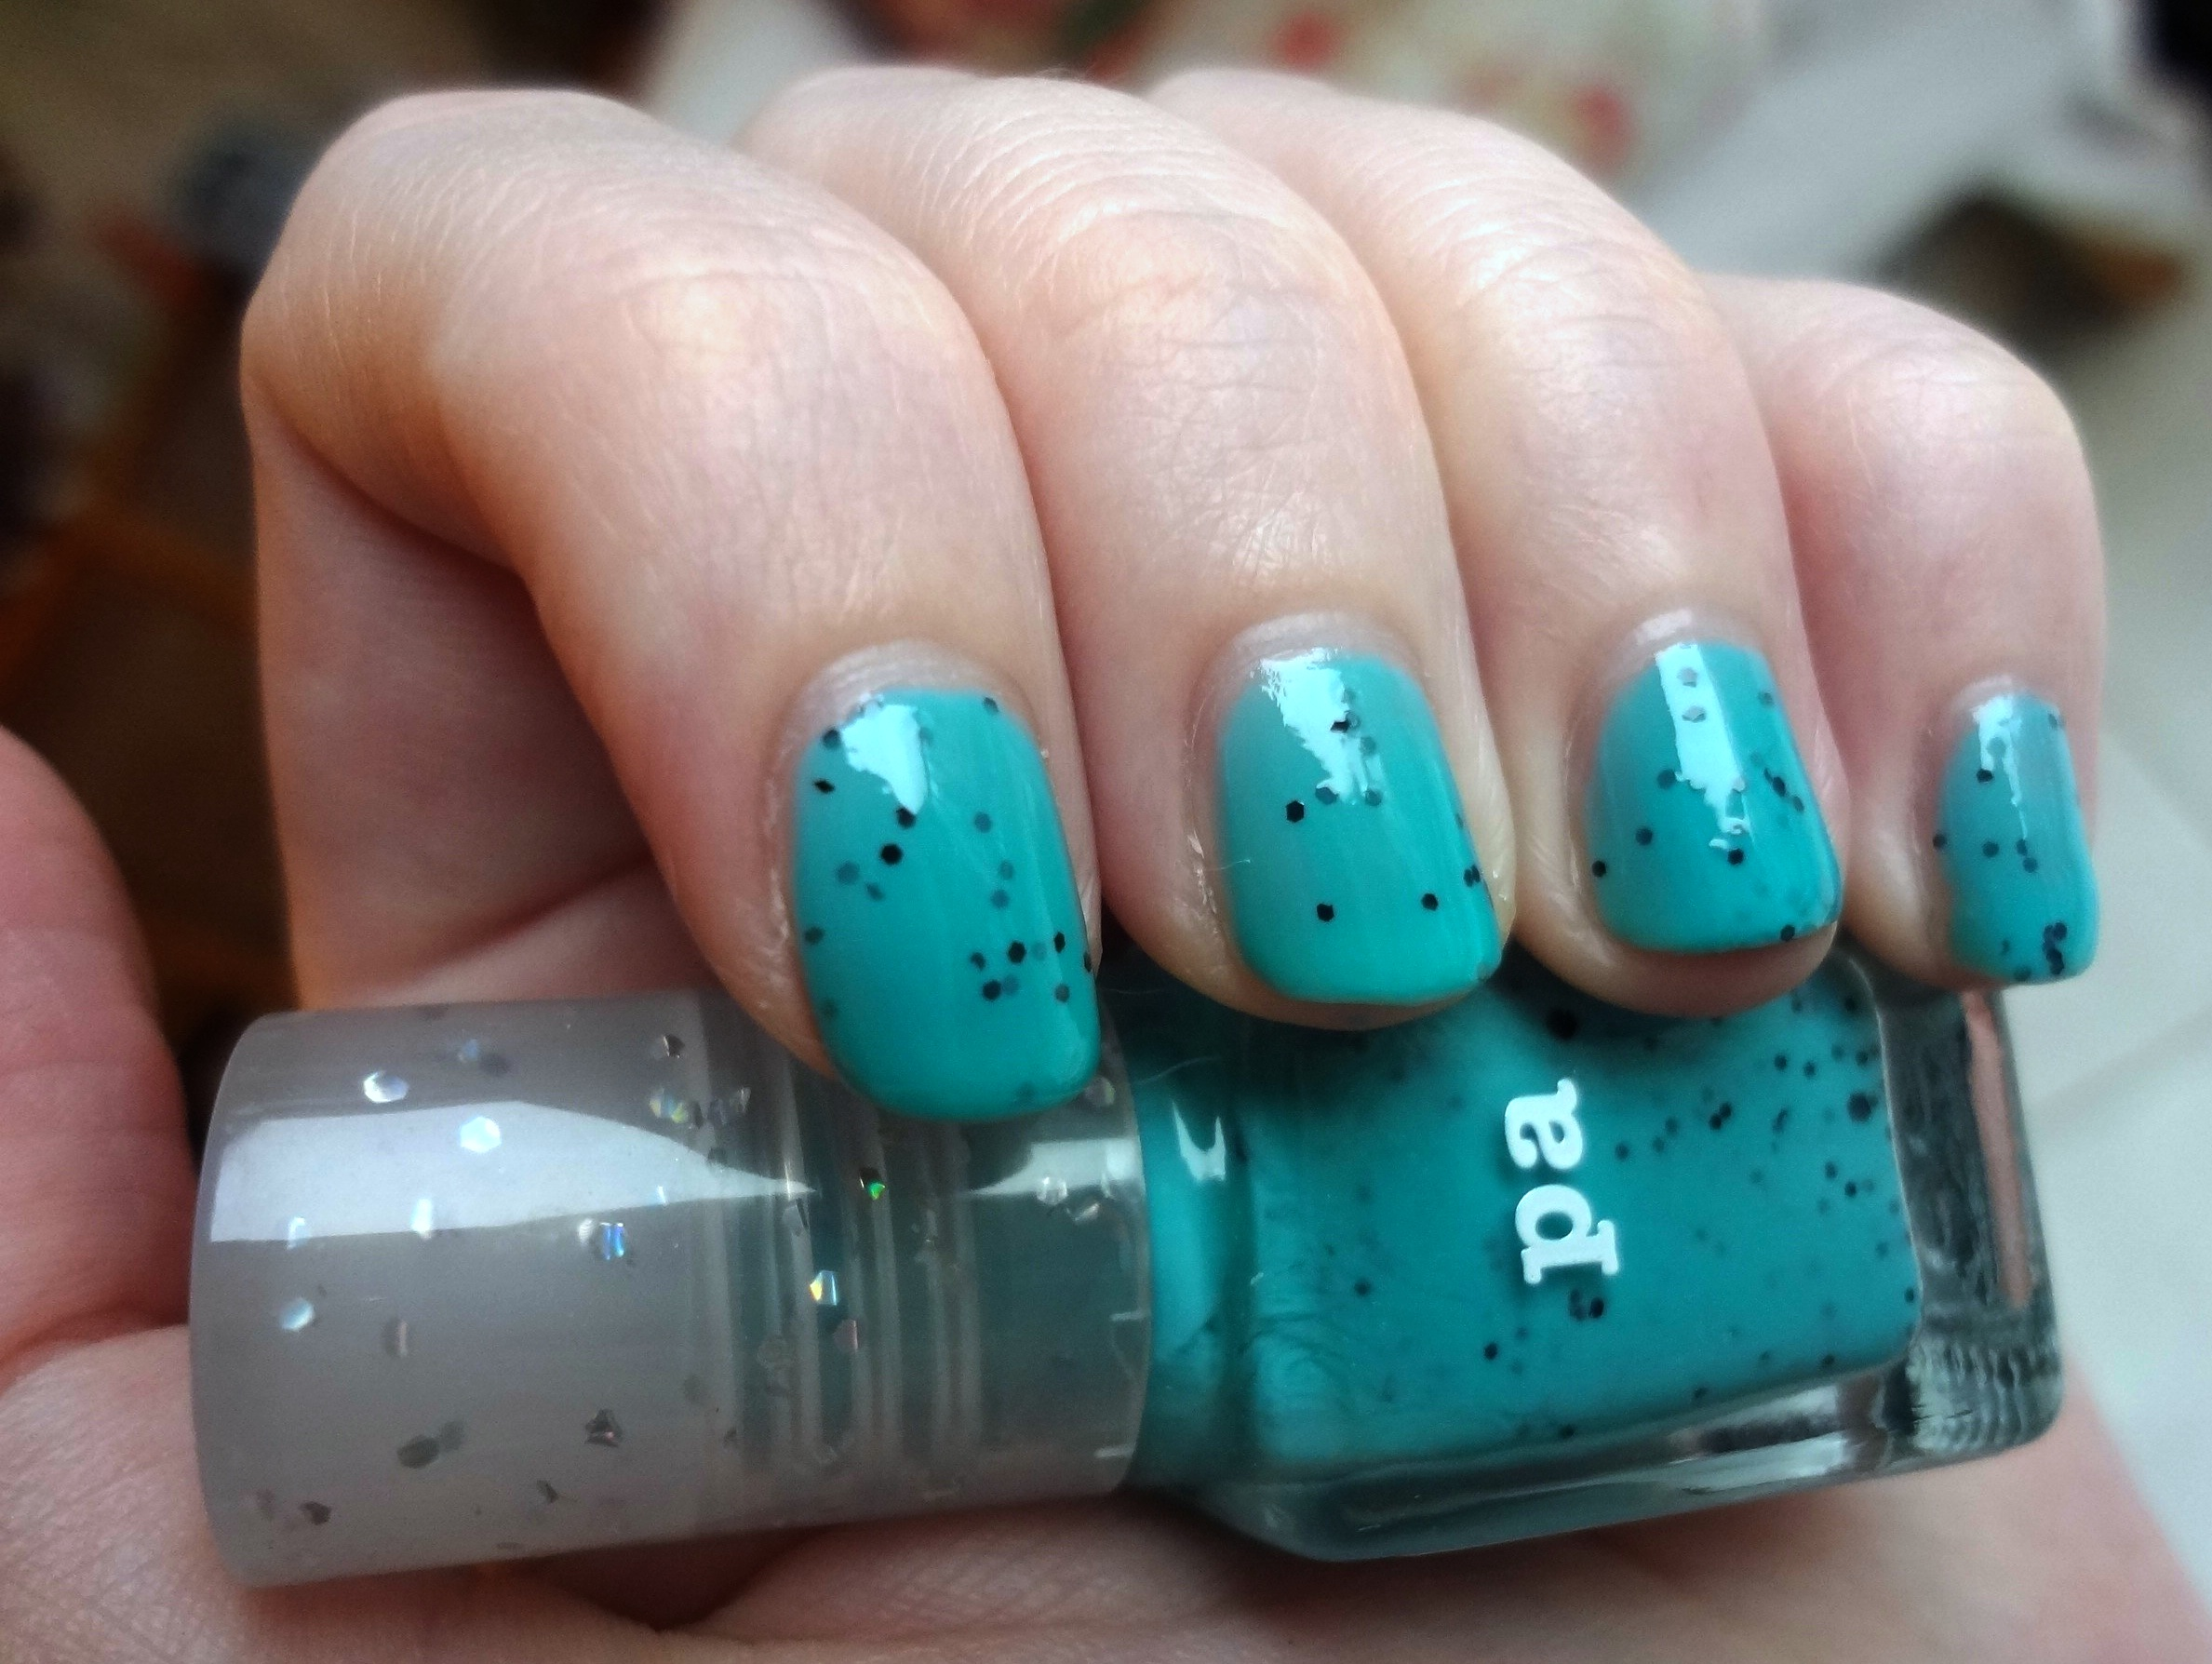 pa AA62 nail polish review | Through The Looking Glass